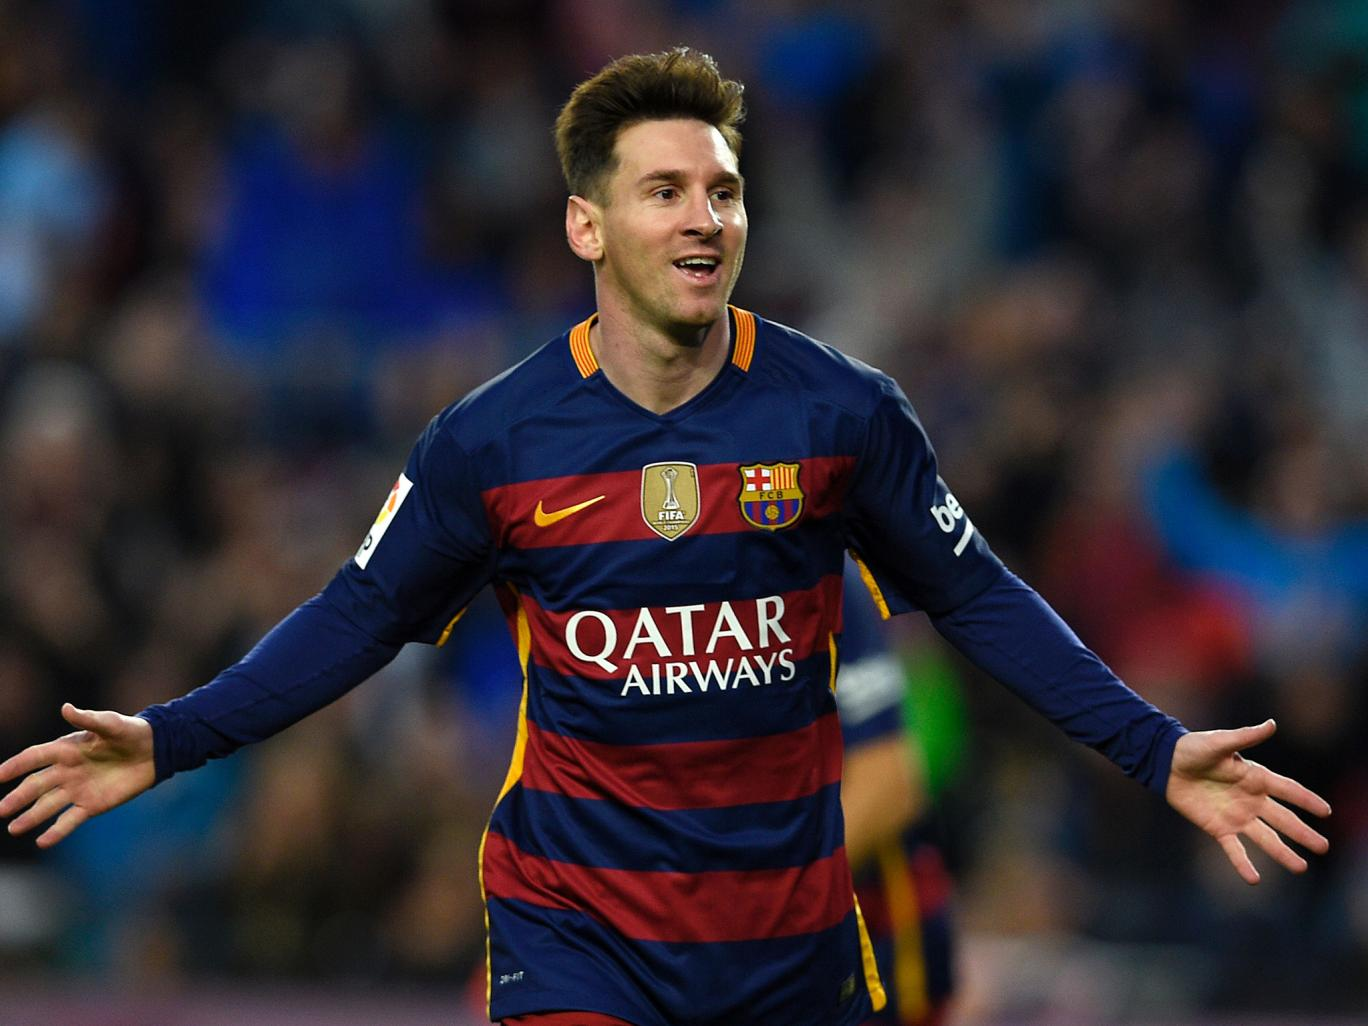 Lionel Messi Latest News Videos and Lionel Messi Photos